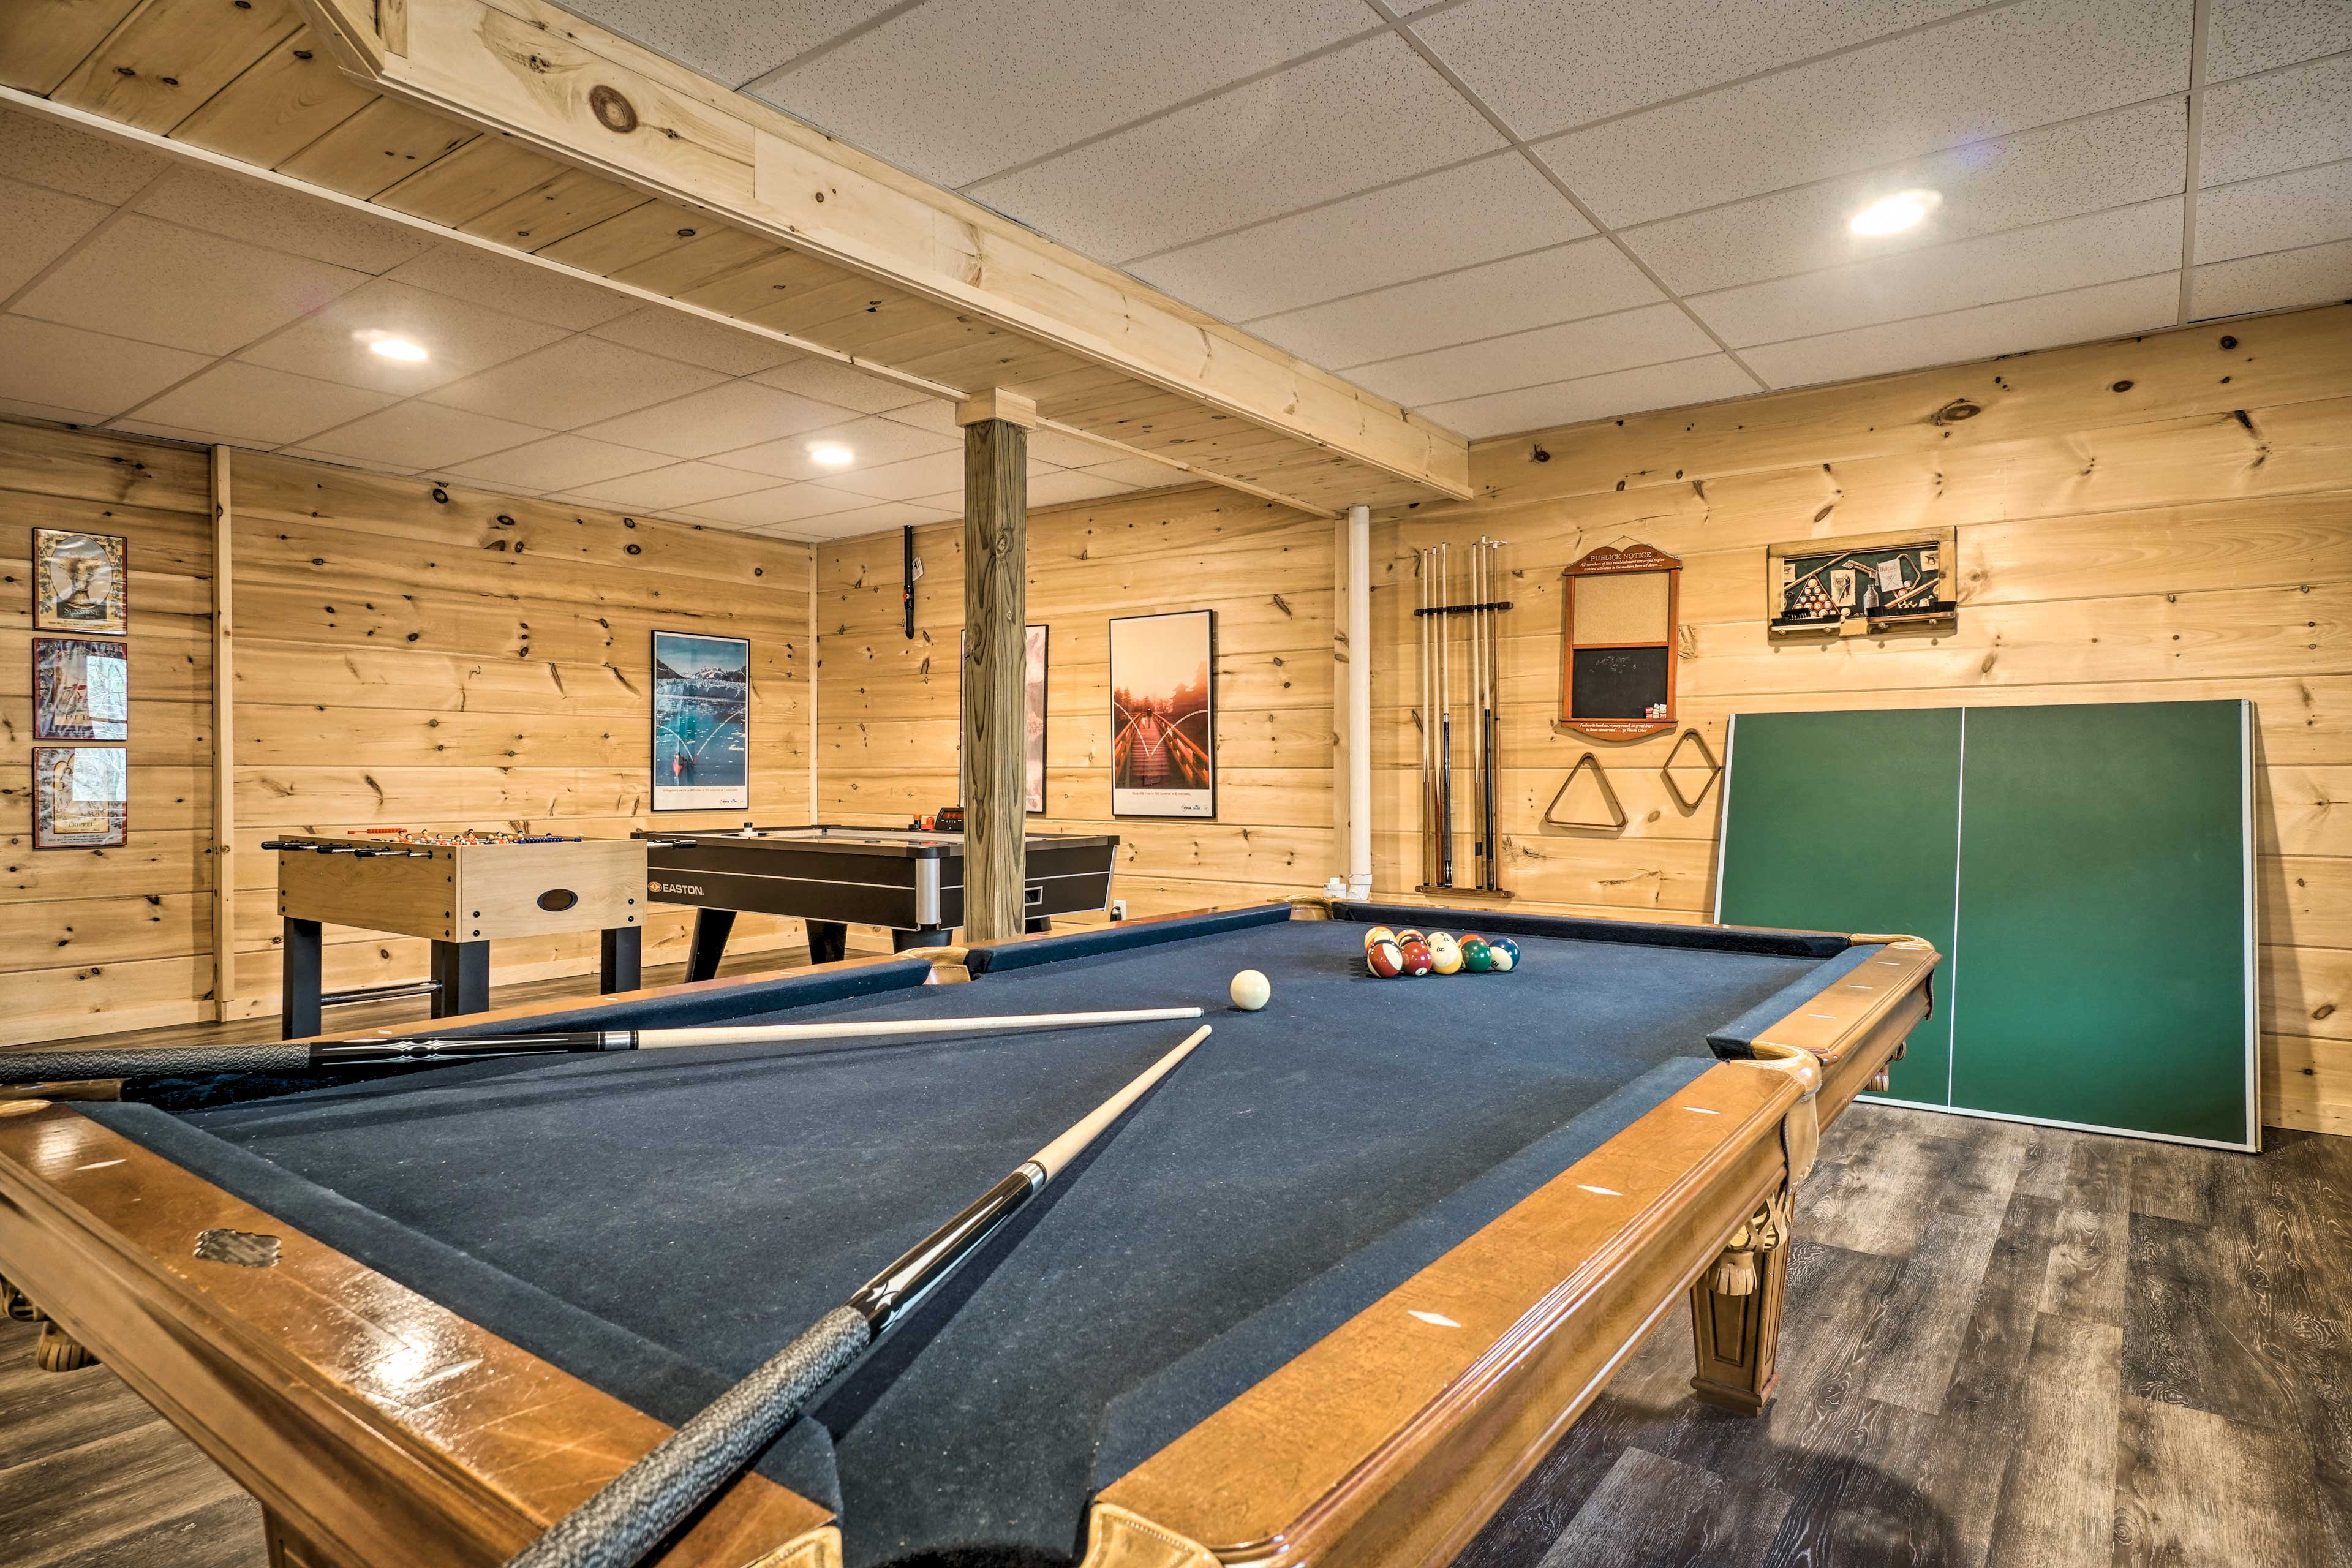 The downstairs game room boasts a pool table, ping pong table, and darts.